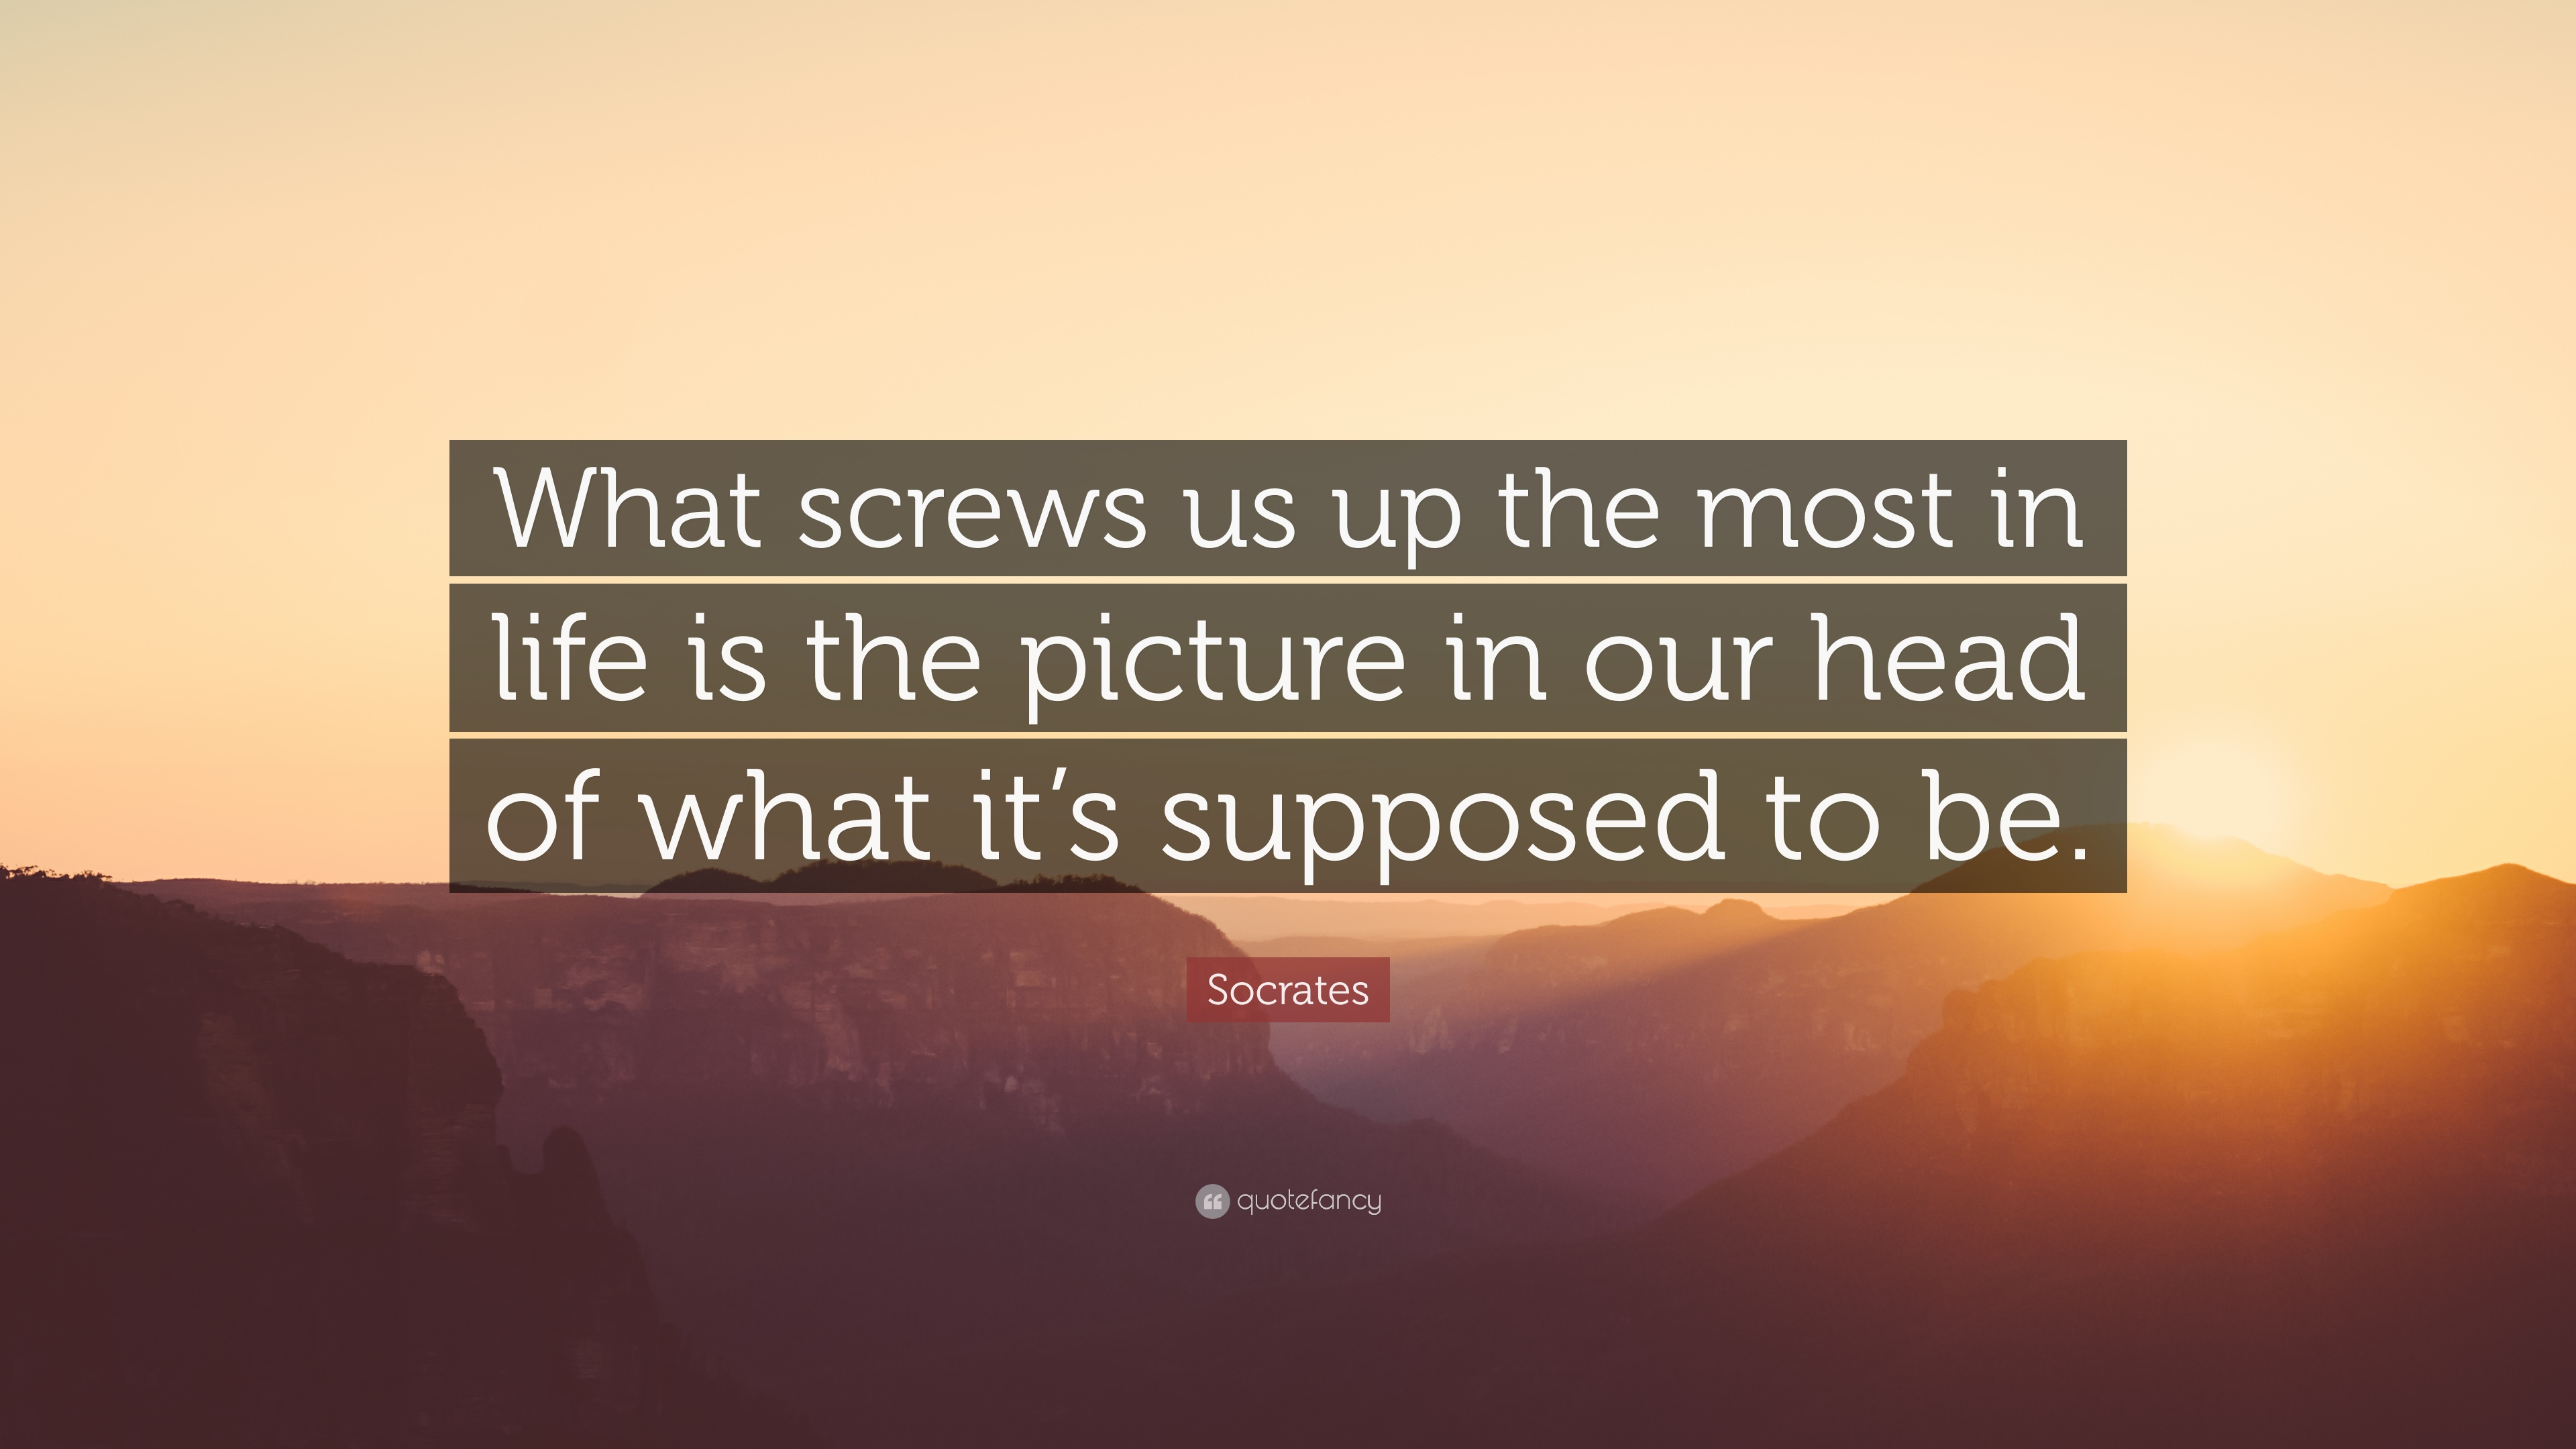 What screws us up the most in life ... - My Uplifting Quotes